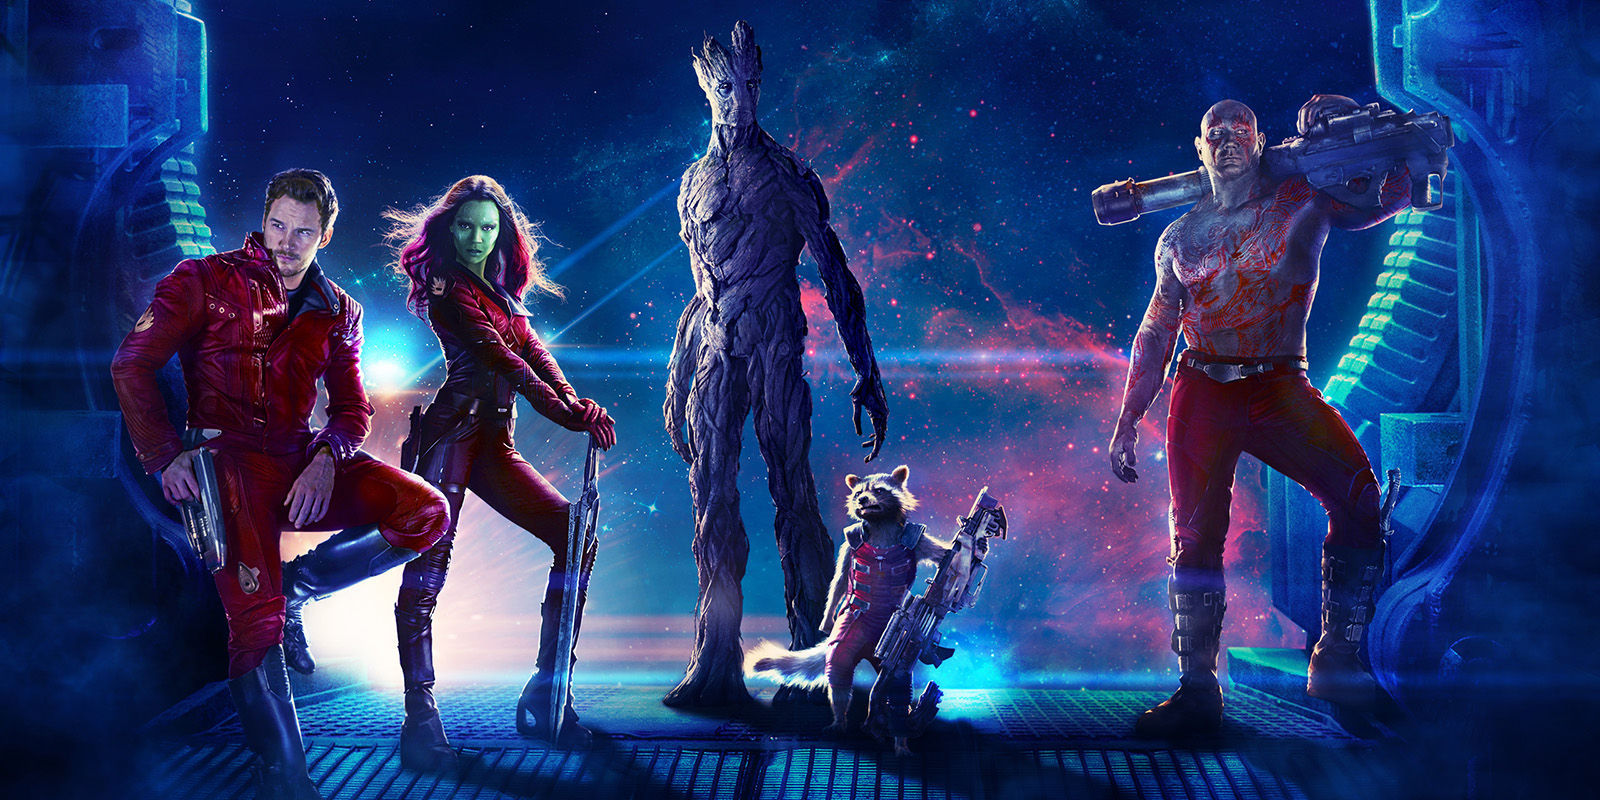 'Guardians of the Galaxy Vol. 2' Super Bowl Spot Reintroduces the Team